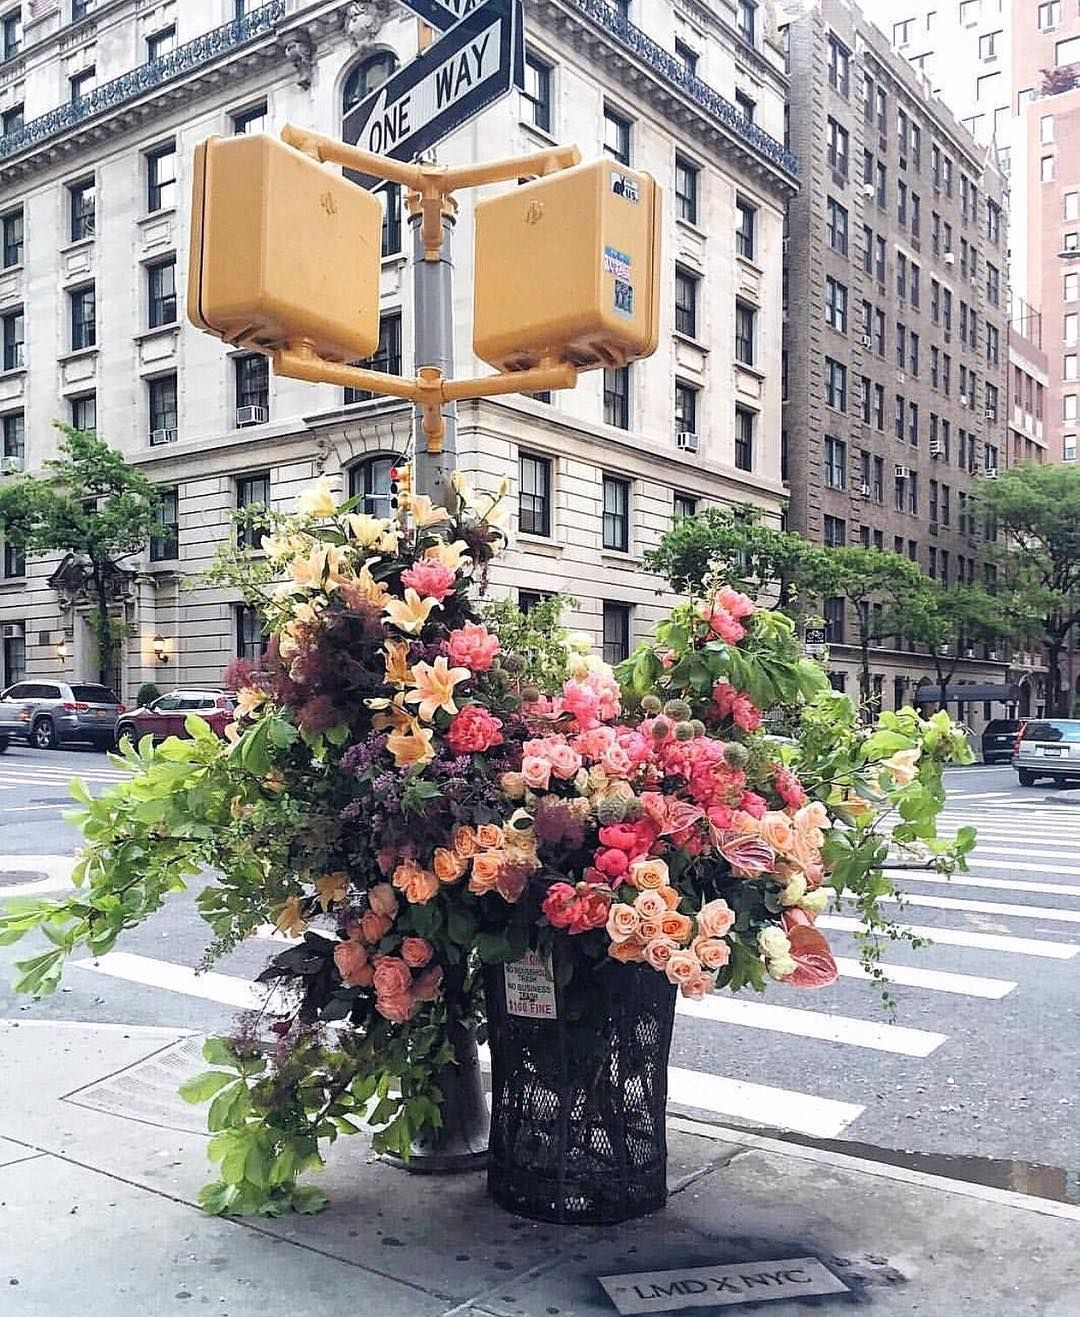 Lewis Miller Designs x NYC | NYC | Pinterest | Flowers, Plants and ...